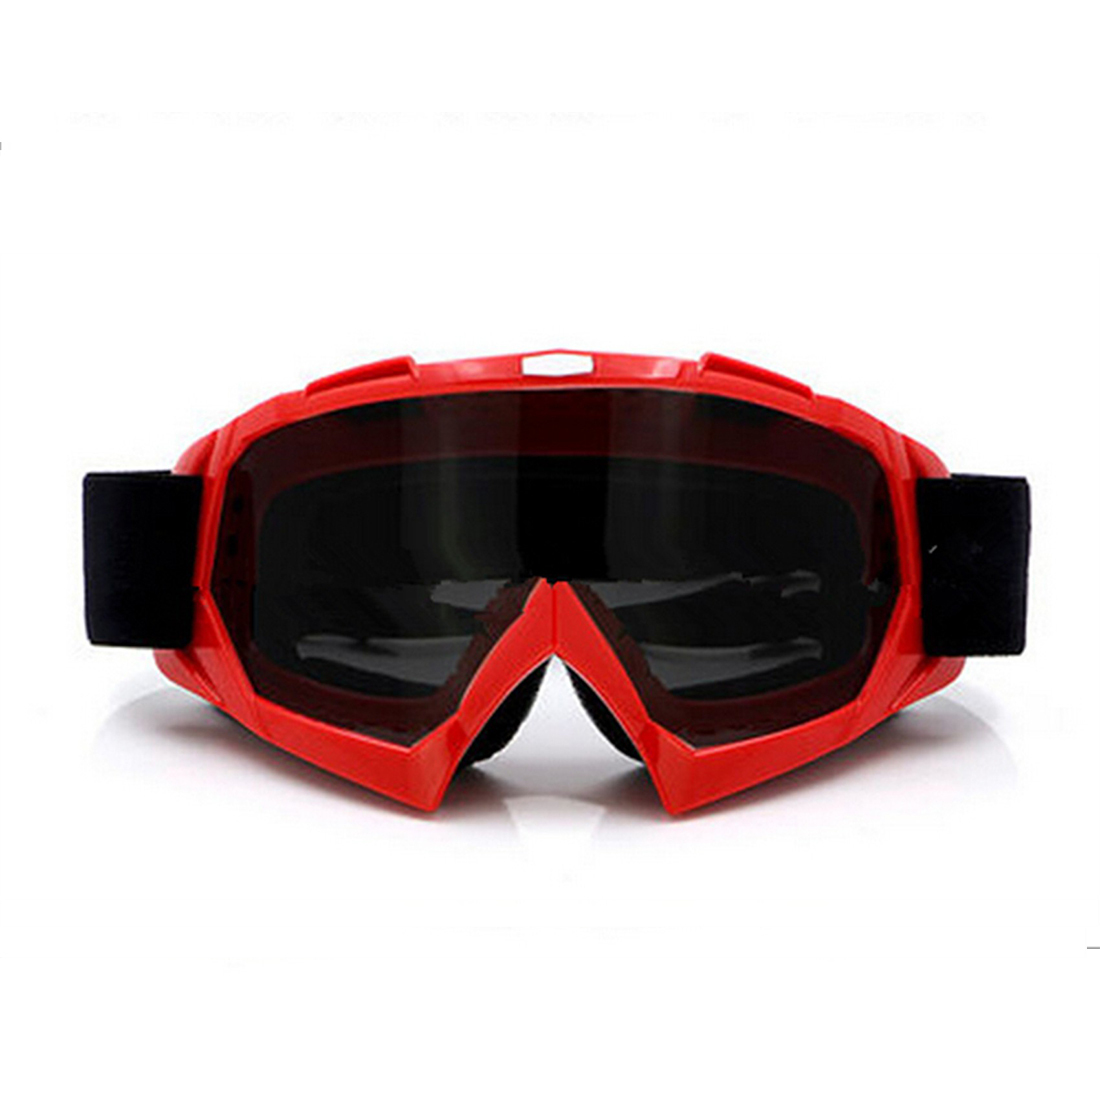 Snow Ski Snowboard Goggles Anti-Fog Eye Protection Red Tea ...